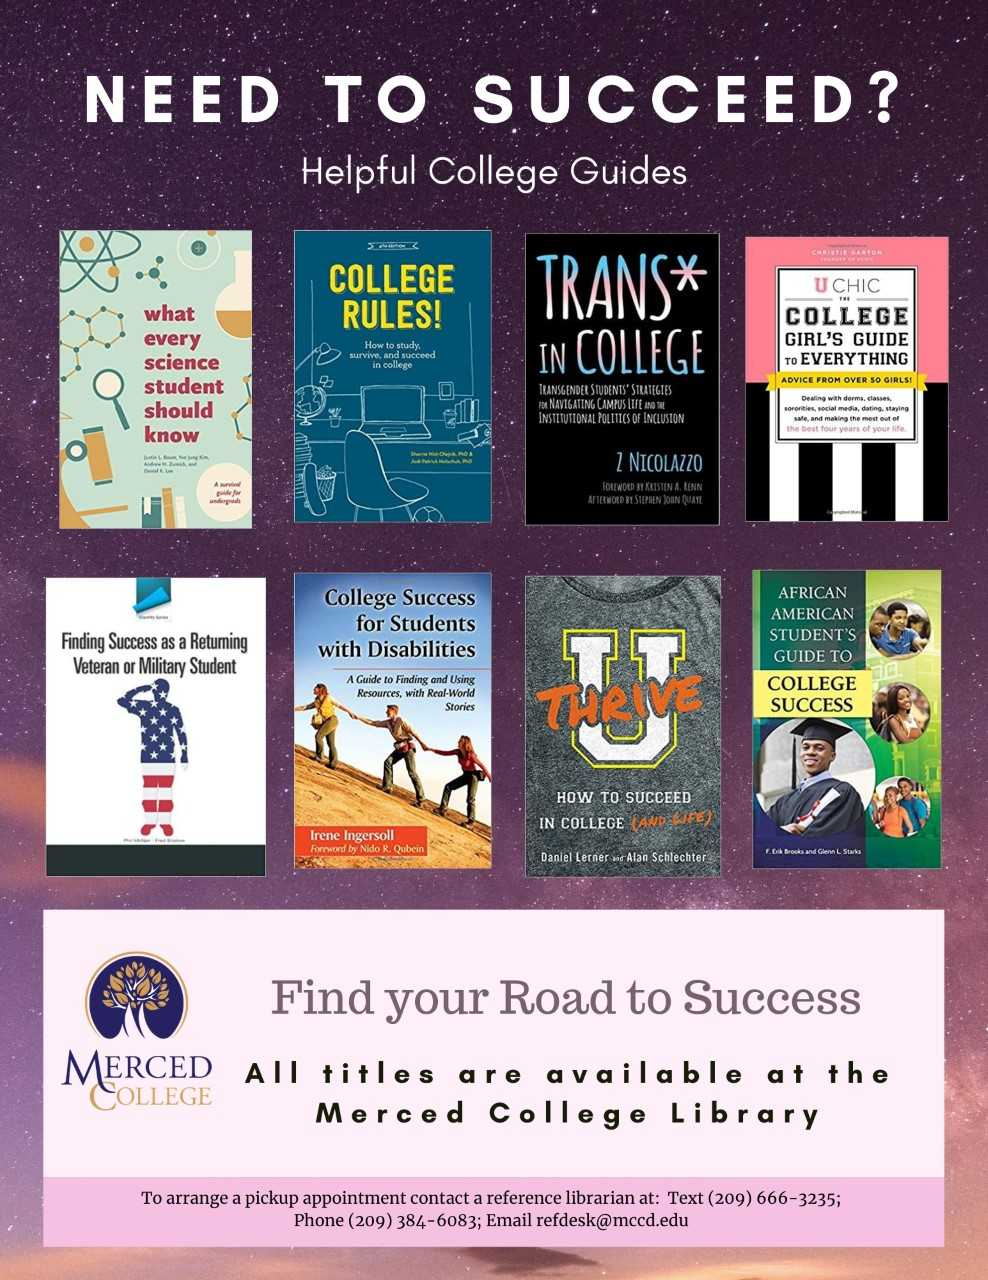 Need to Succeed? College success book recommendations